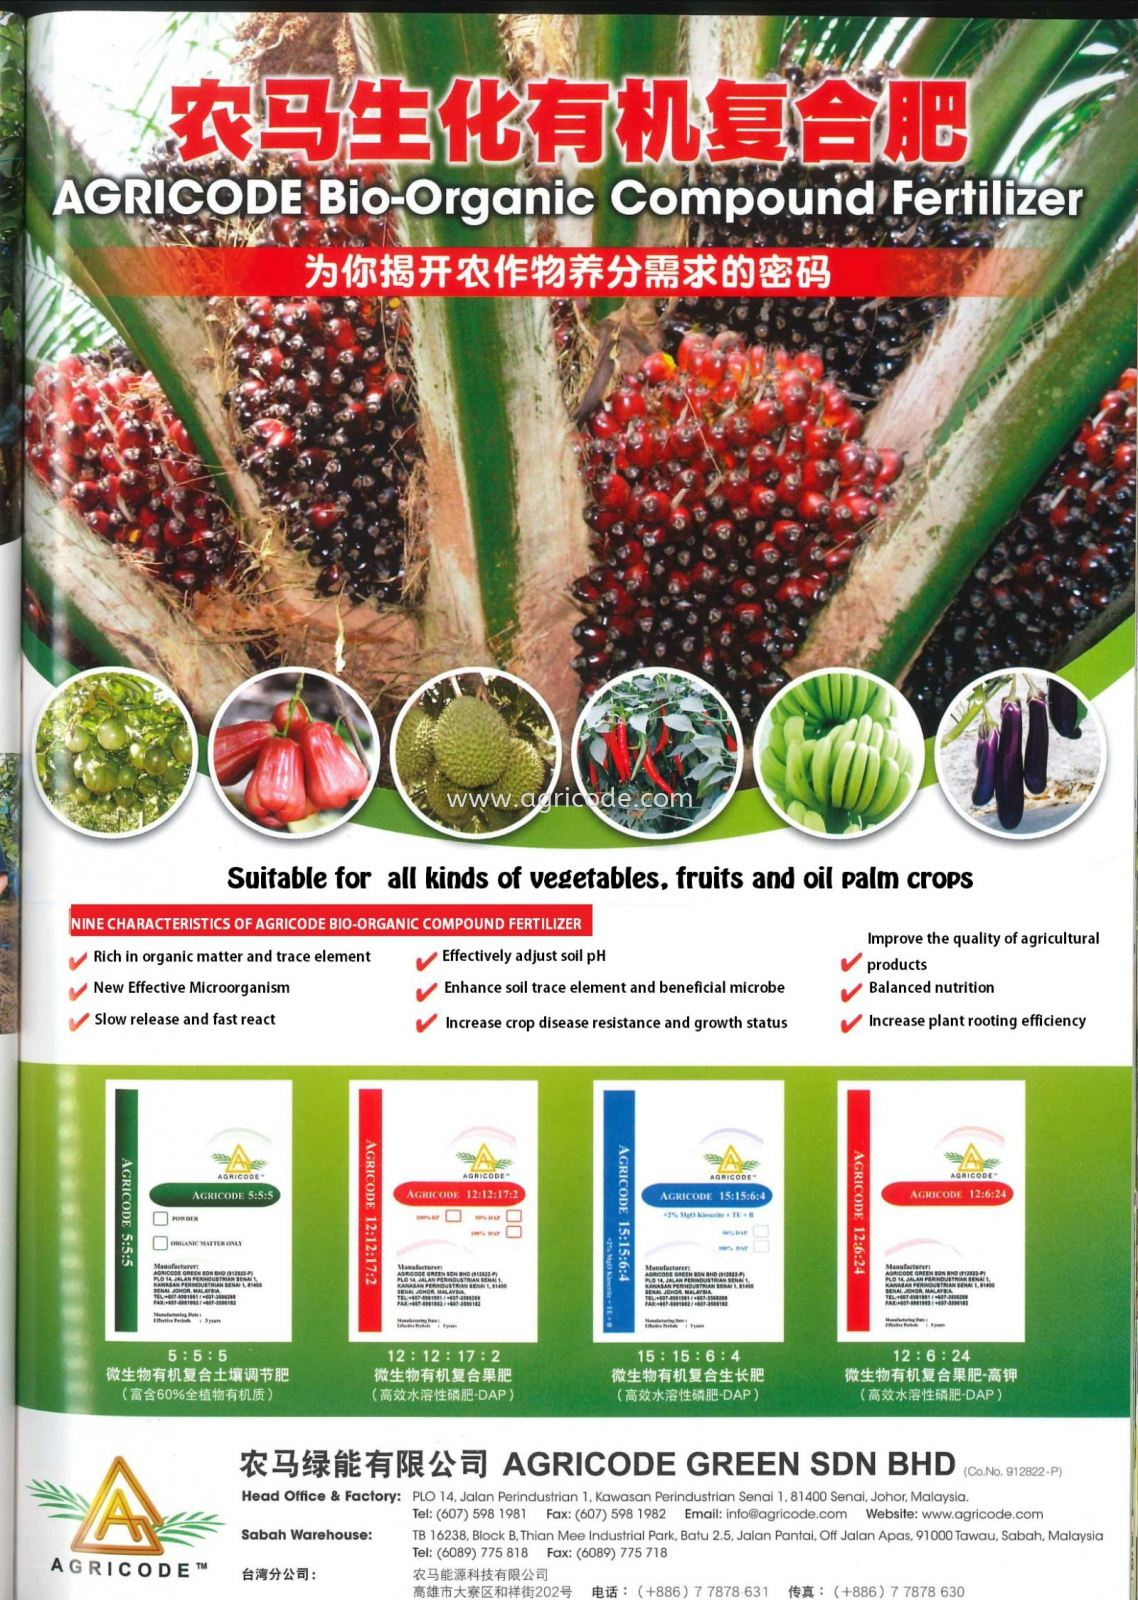 AGRICODE COMPOUND FERTILIZER - Apr 20, 2018, Johor Bahru (JB